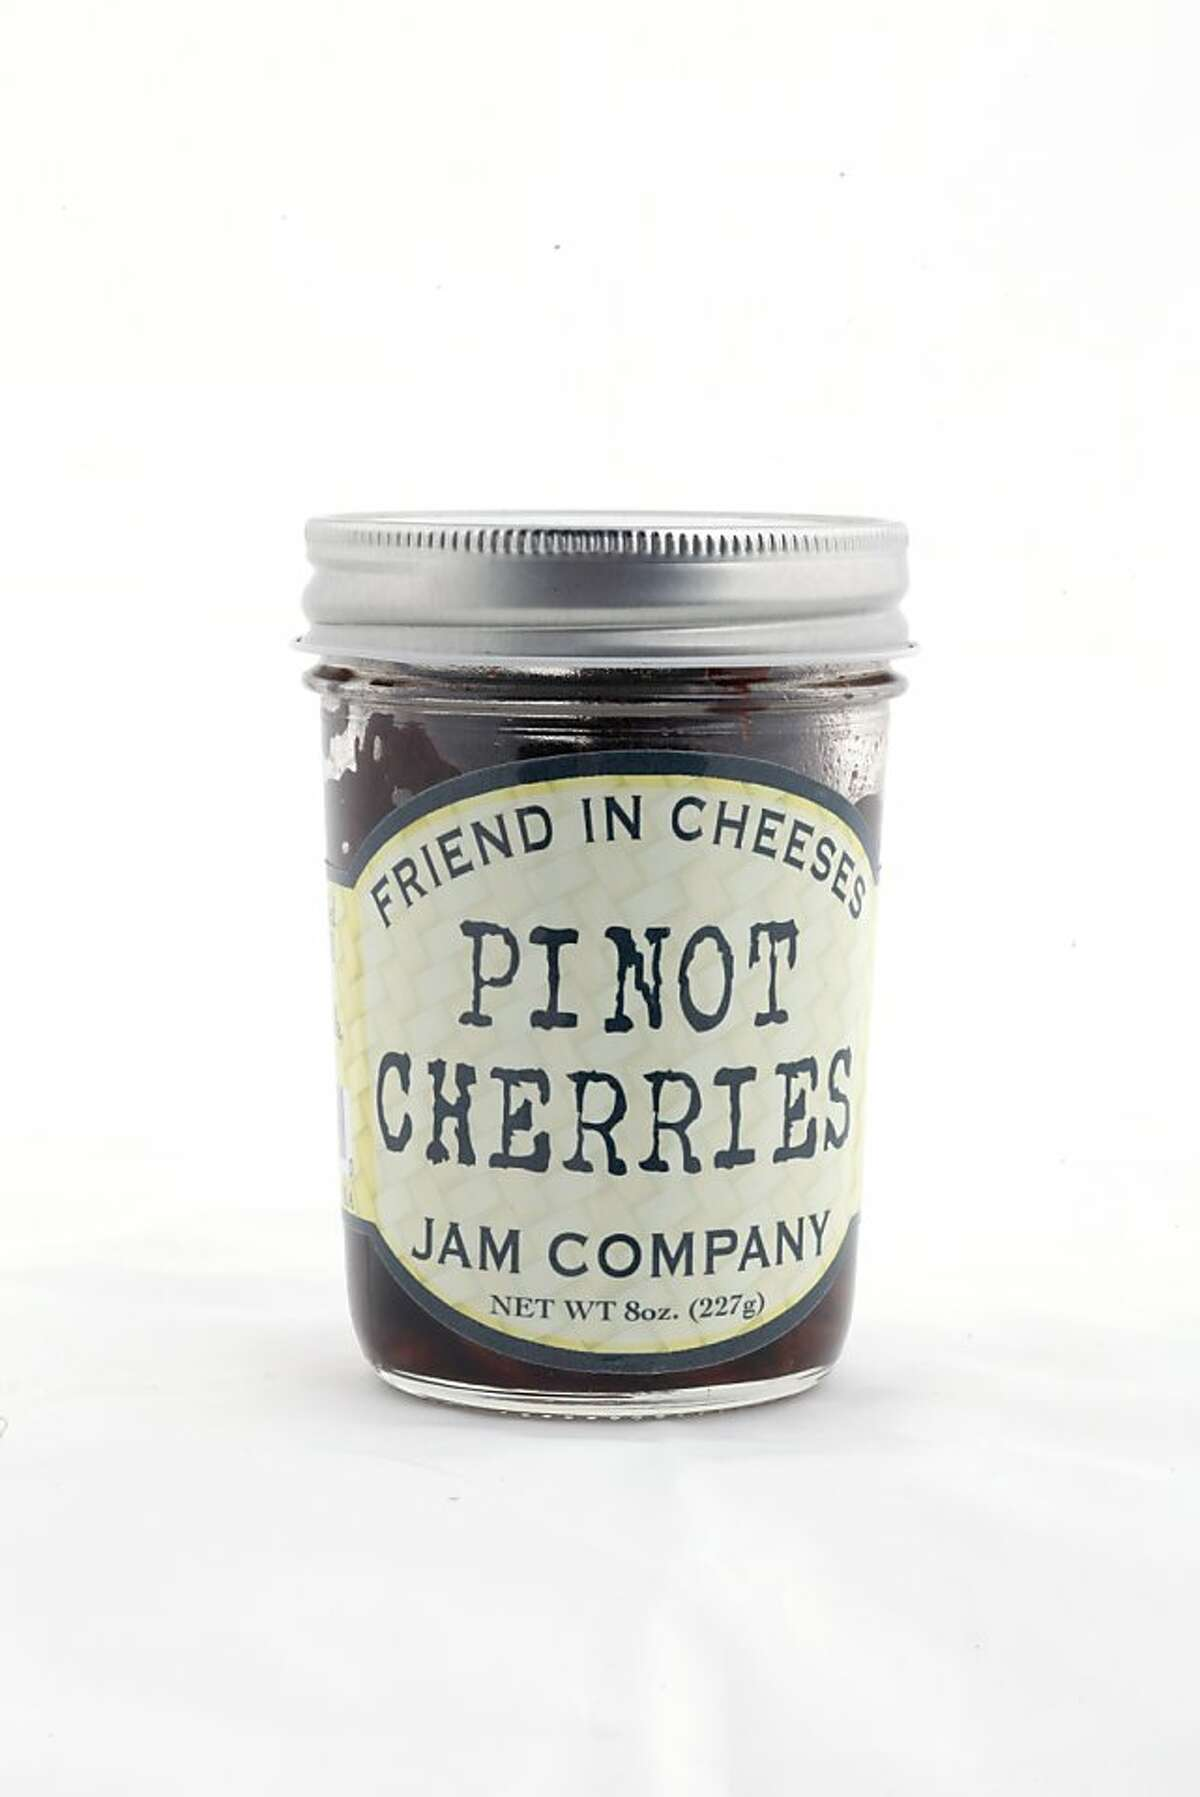 Friend in Cheeses Jam Company Pinot Cherries as seen in San Francisco, California on Wednesday, January 25, 2012.